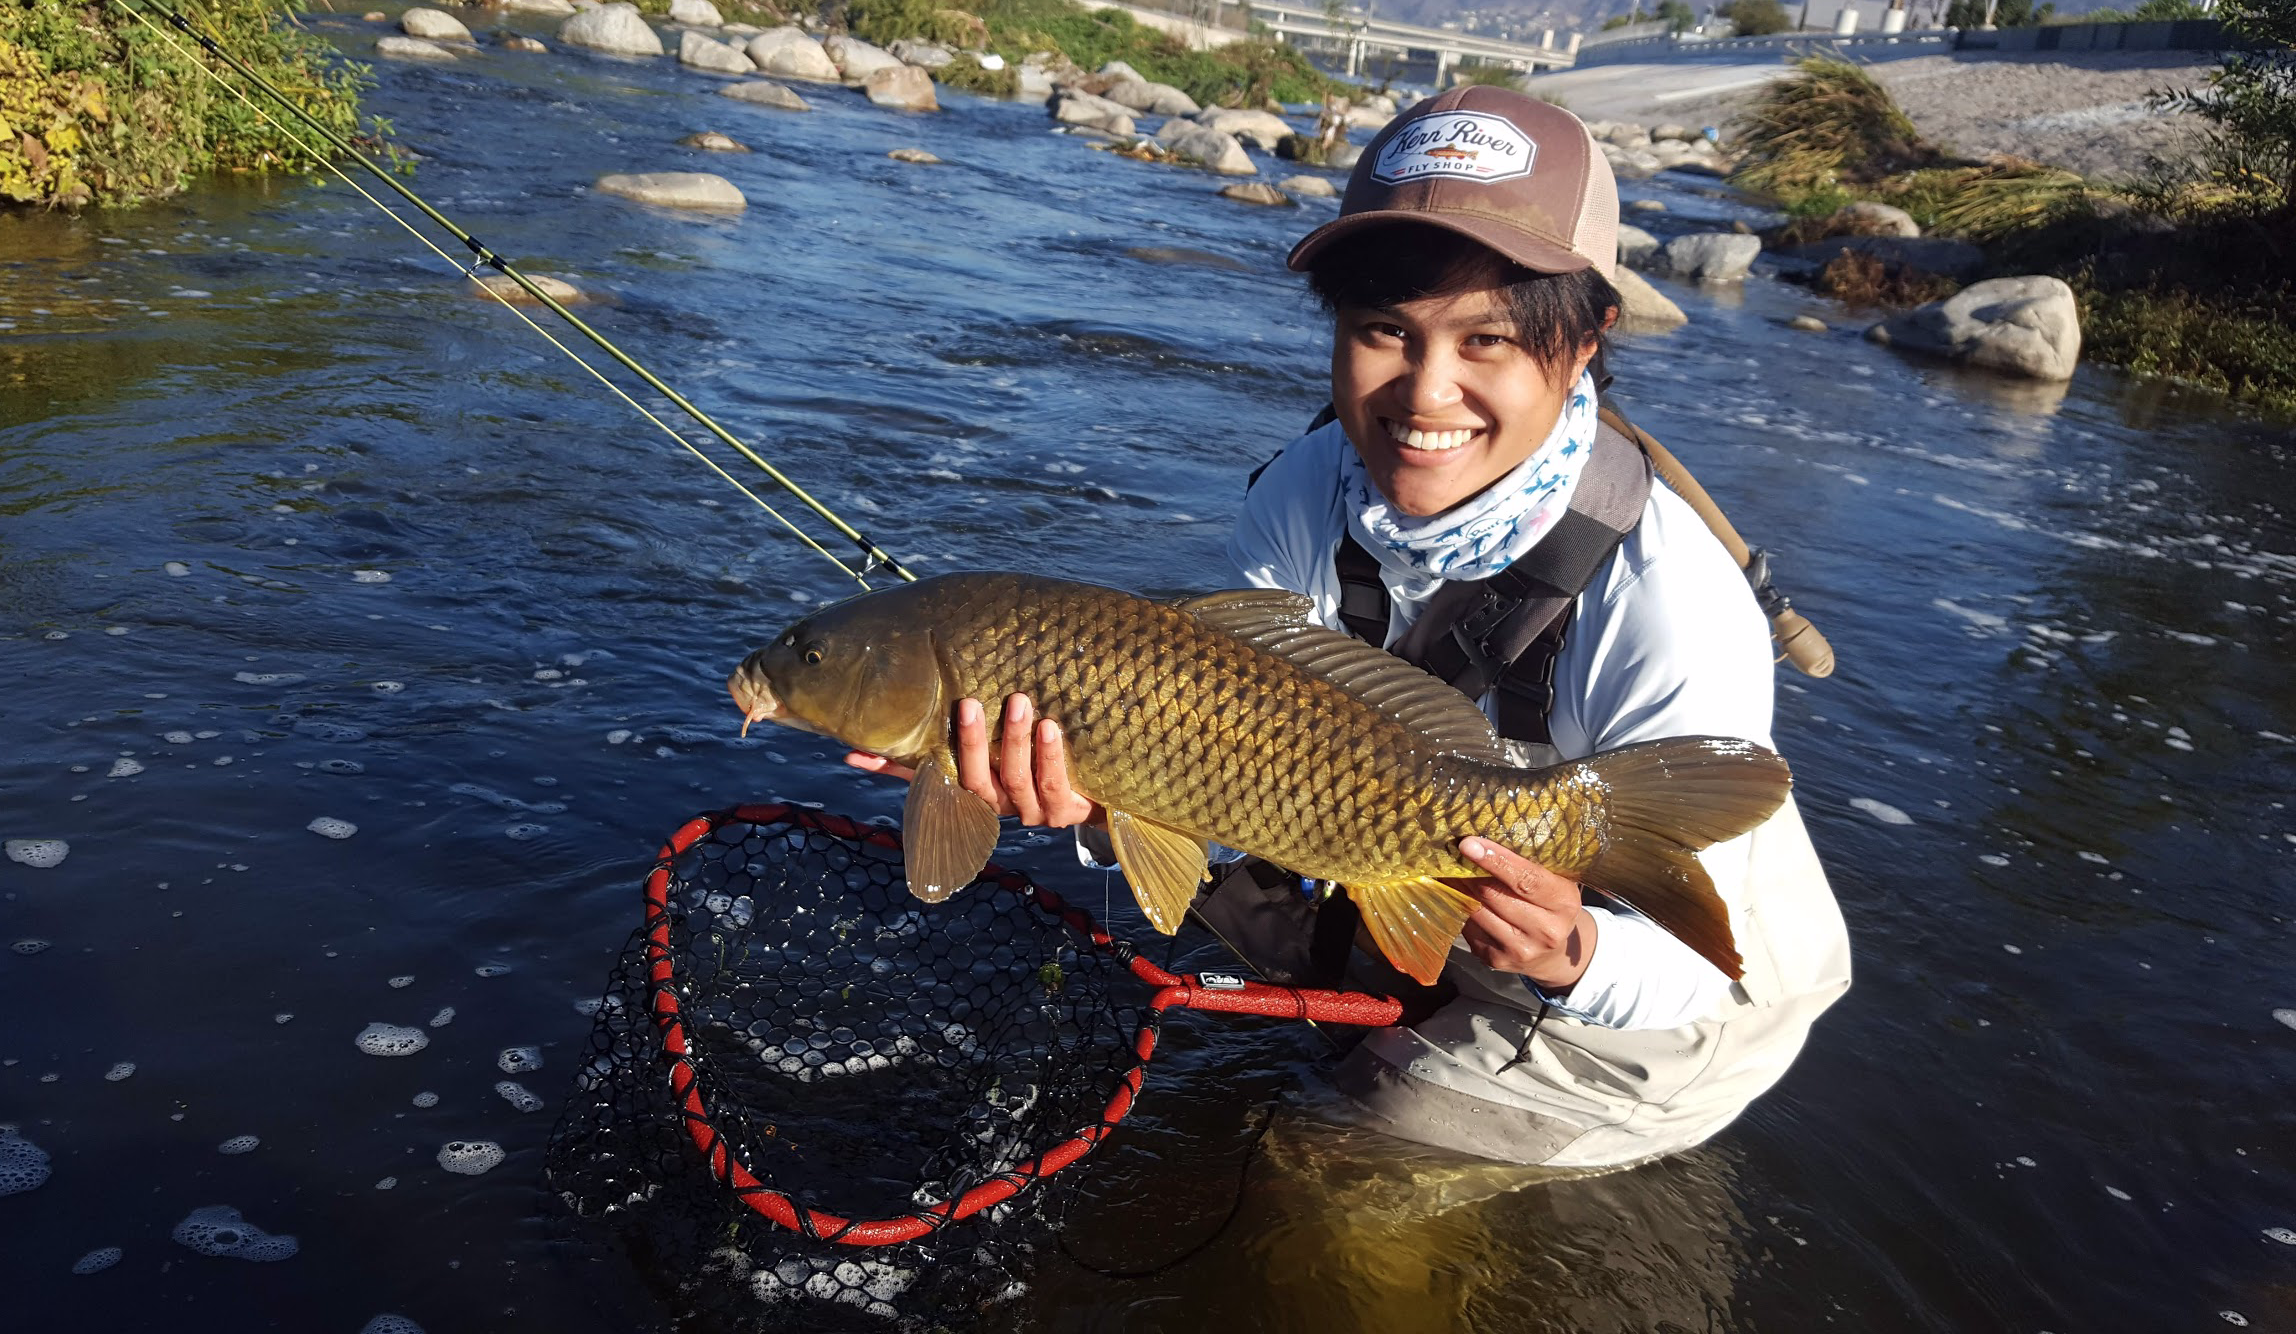 """Celine Bayla - In her honor, the new name of the Fly Gal Weekend will now be called """"Celine's Fly Gal Weekend."""" She has dedicated her time connecting and building a community of women who fly fish. She is missed, but her legacy will live, forever."""